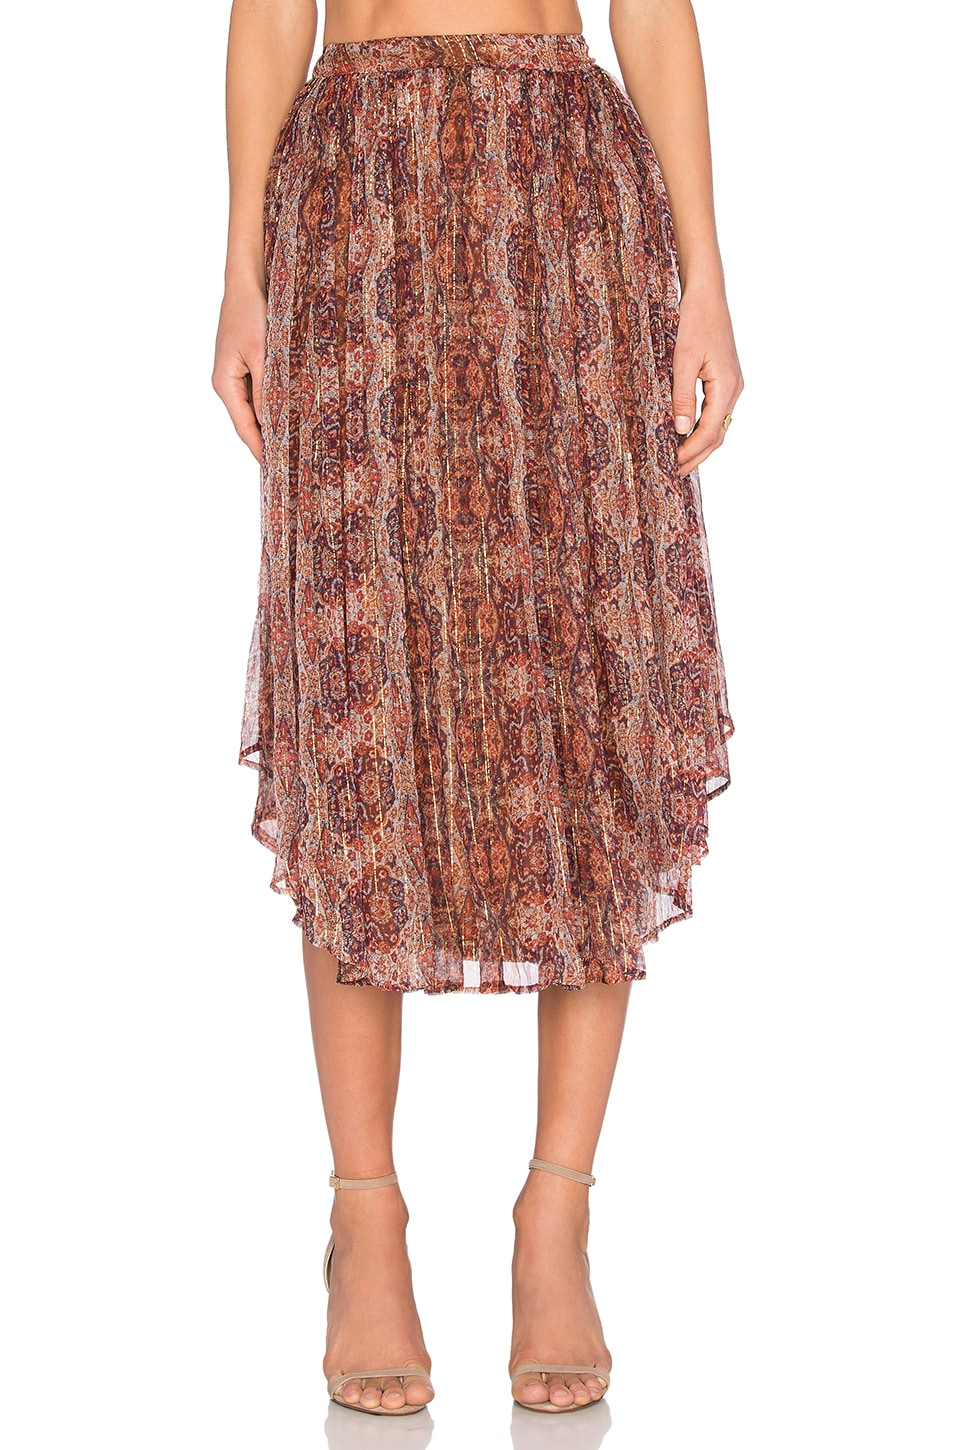 Moroccan Tile Skirt by Bardot